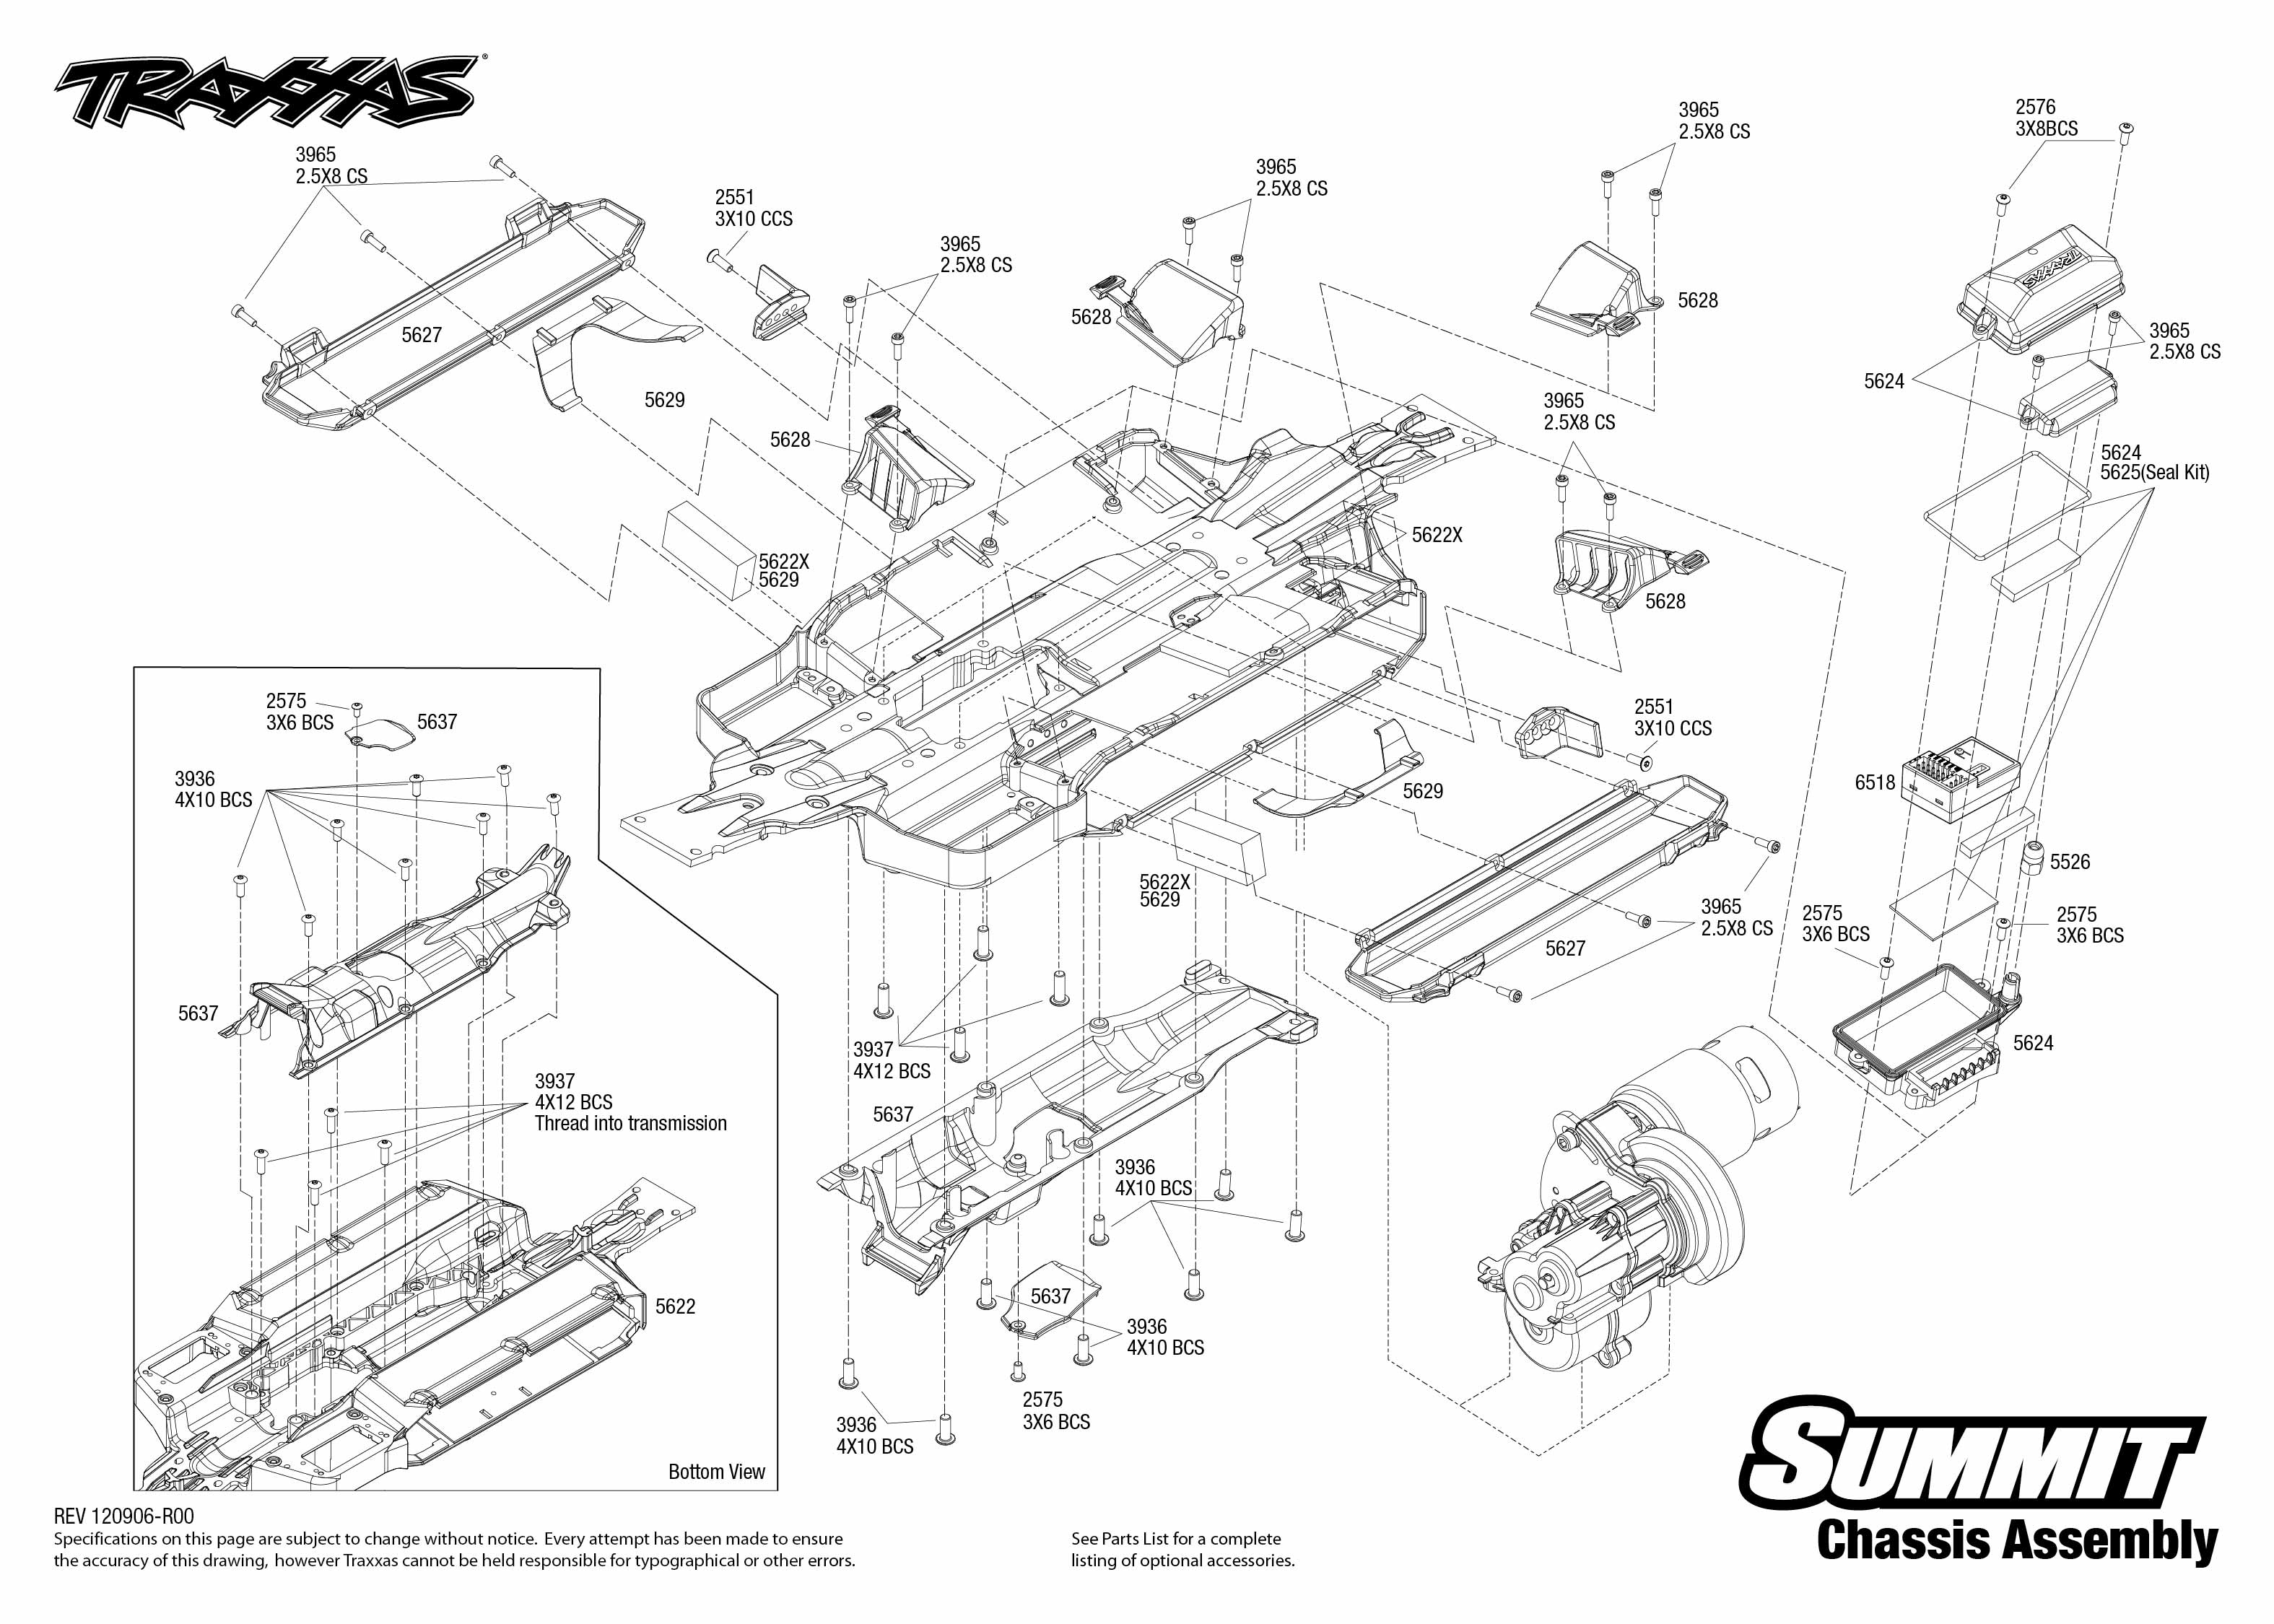 5607 120907 Chassis traxxas 1 10 scale summit 4wd extreme terrain monster truck 5607l traxxas evx 2 wiring diagram at bayanpartner.co